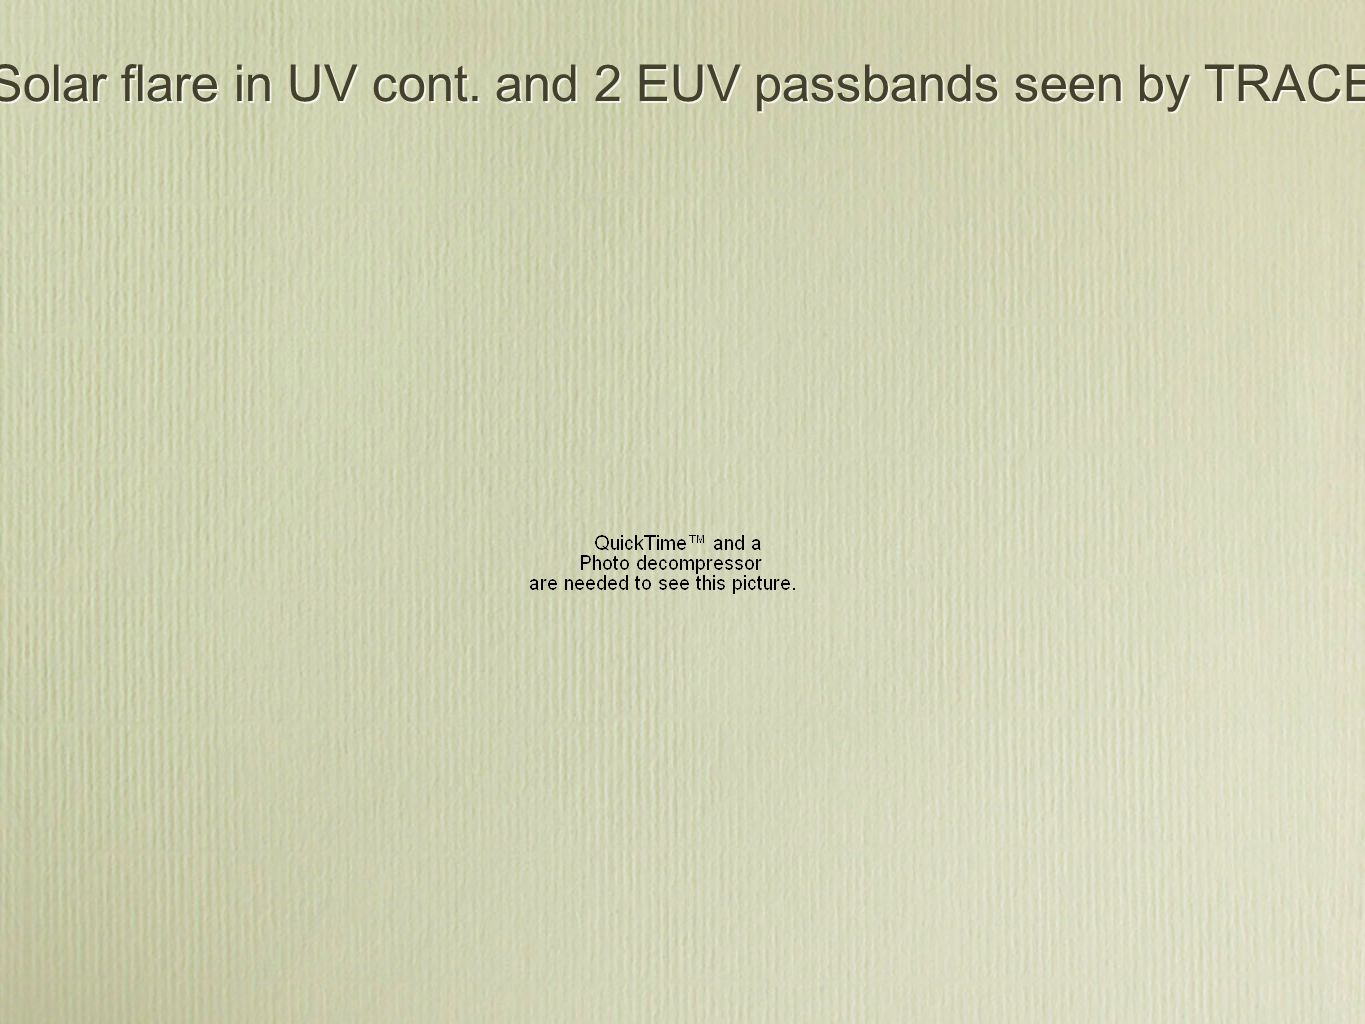 Solar flare in UV cont. and 2 EUV passbands seen by TRACE